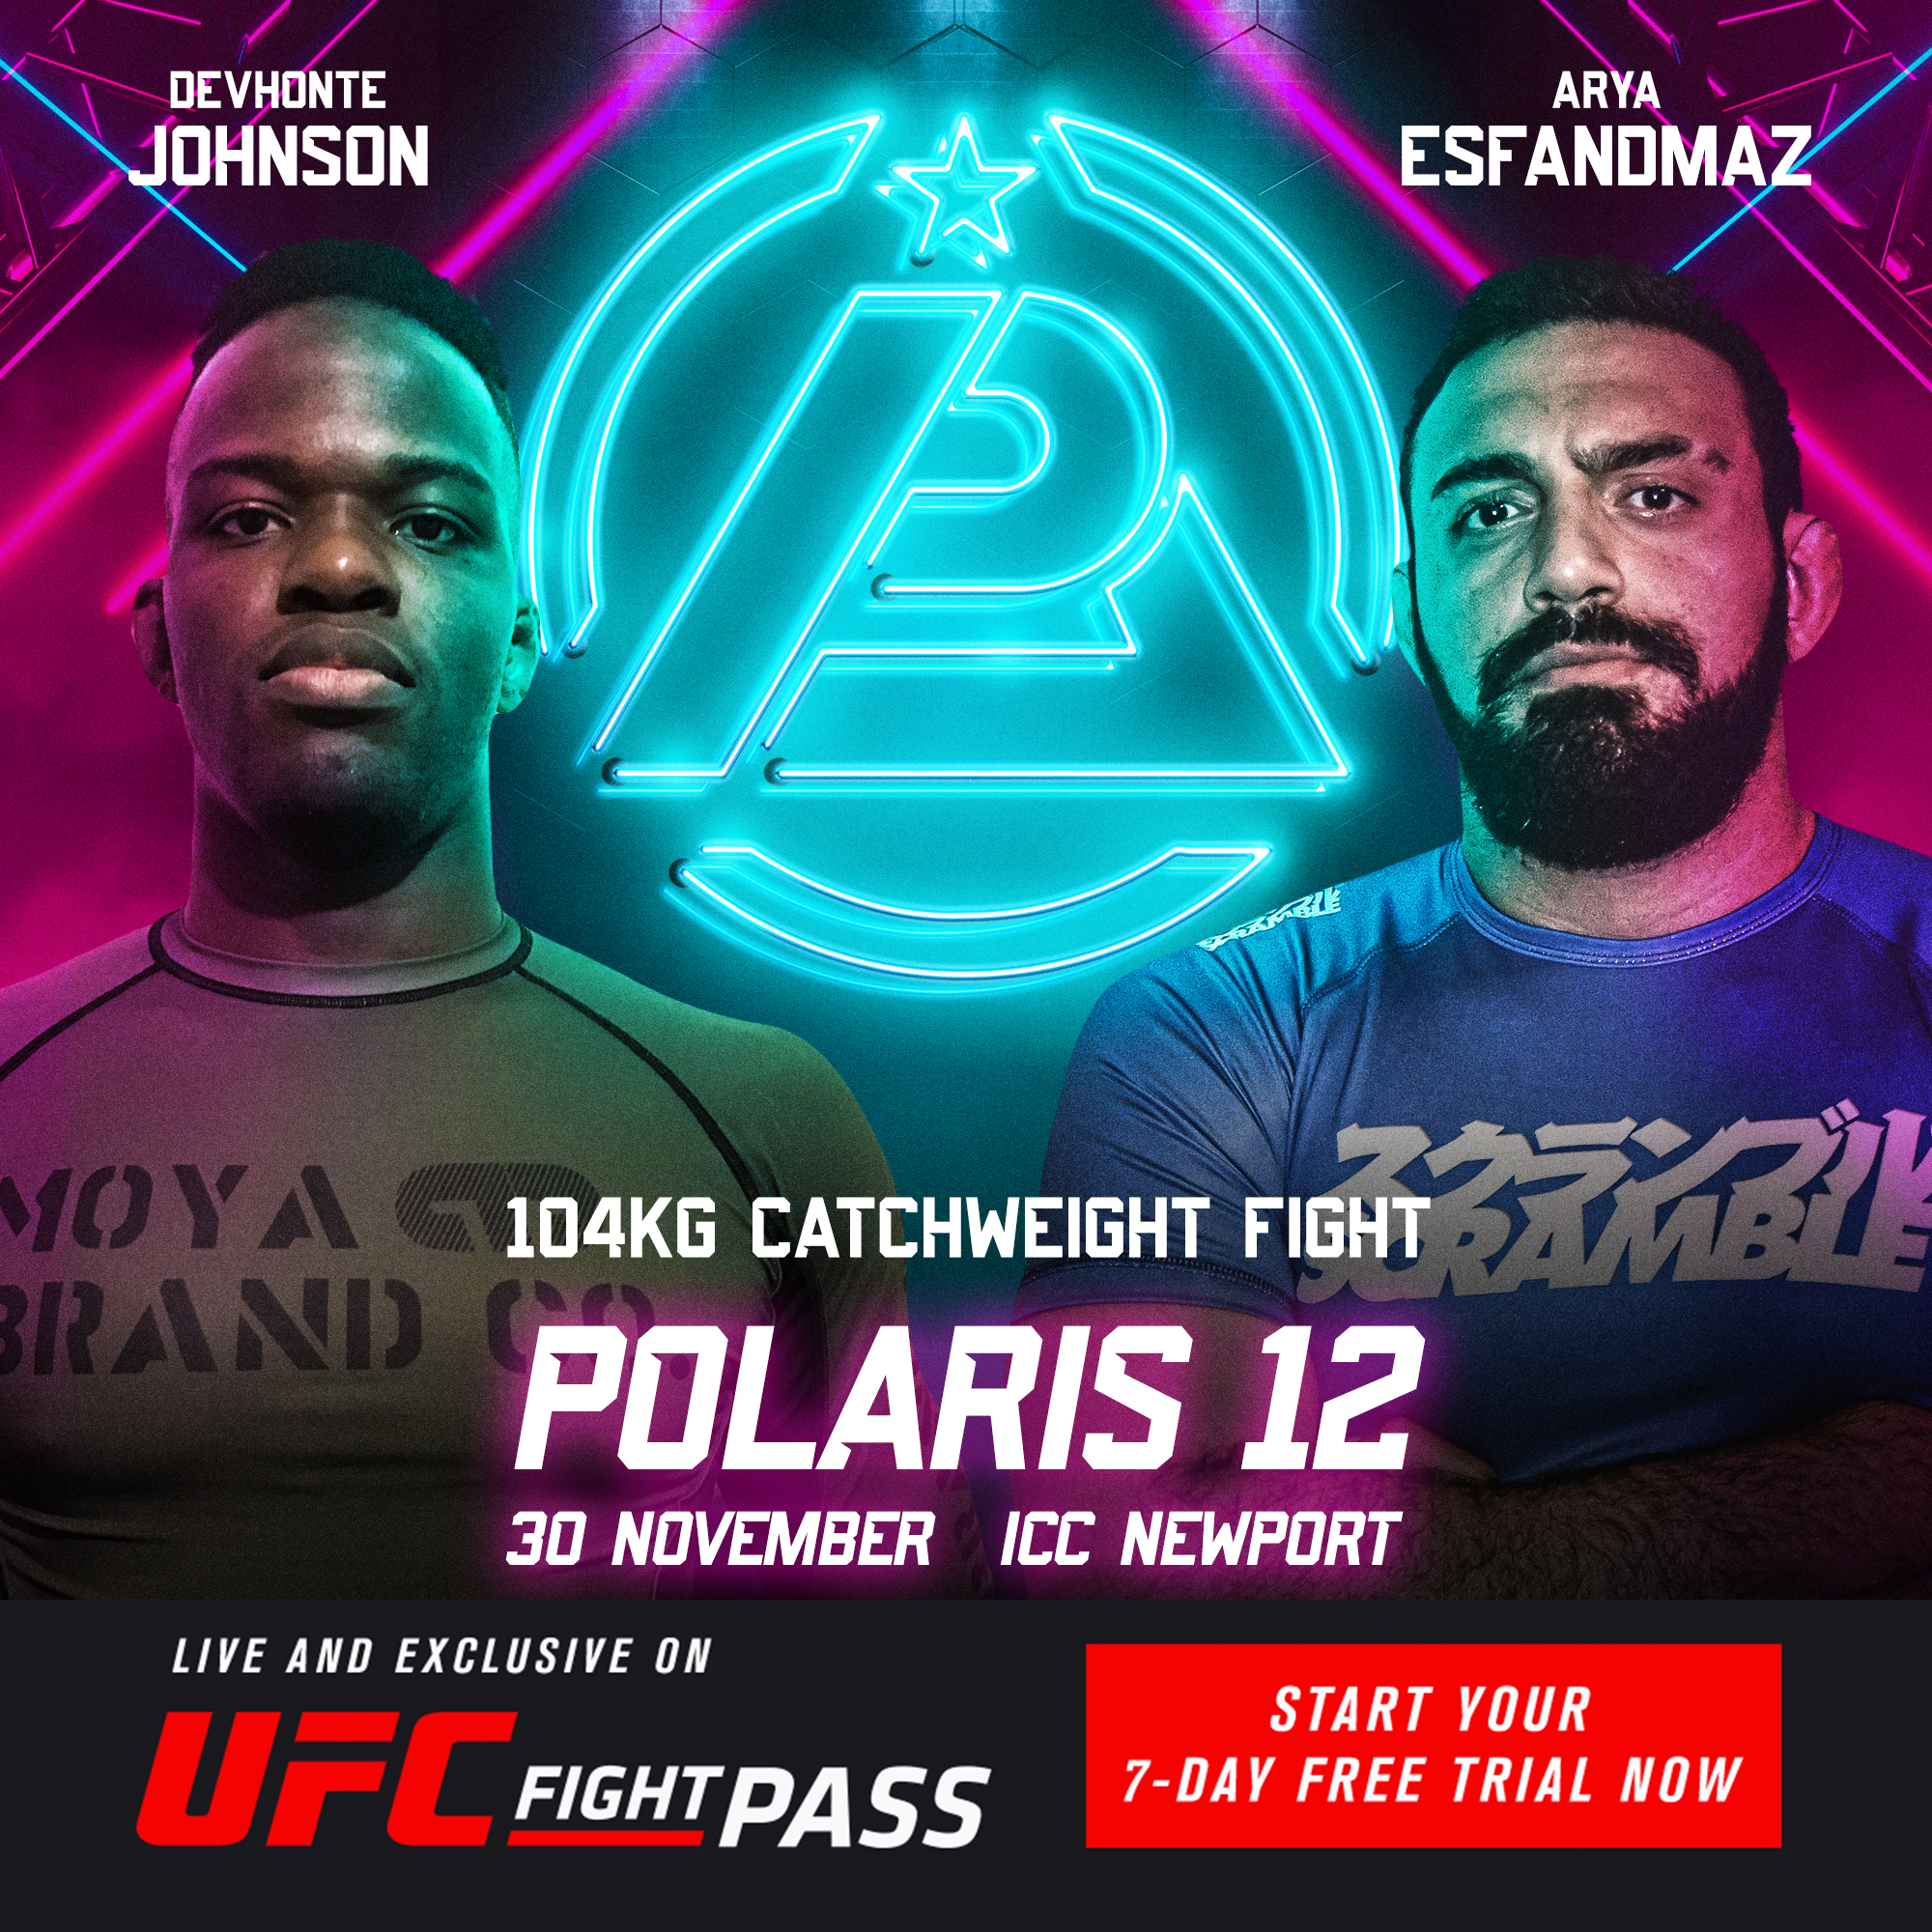 Polaris 12 - Devhonte Johnson VS Arya Esfandmaz